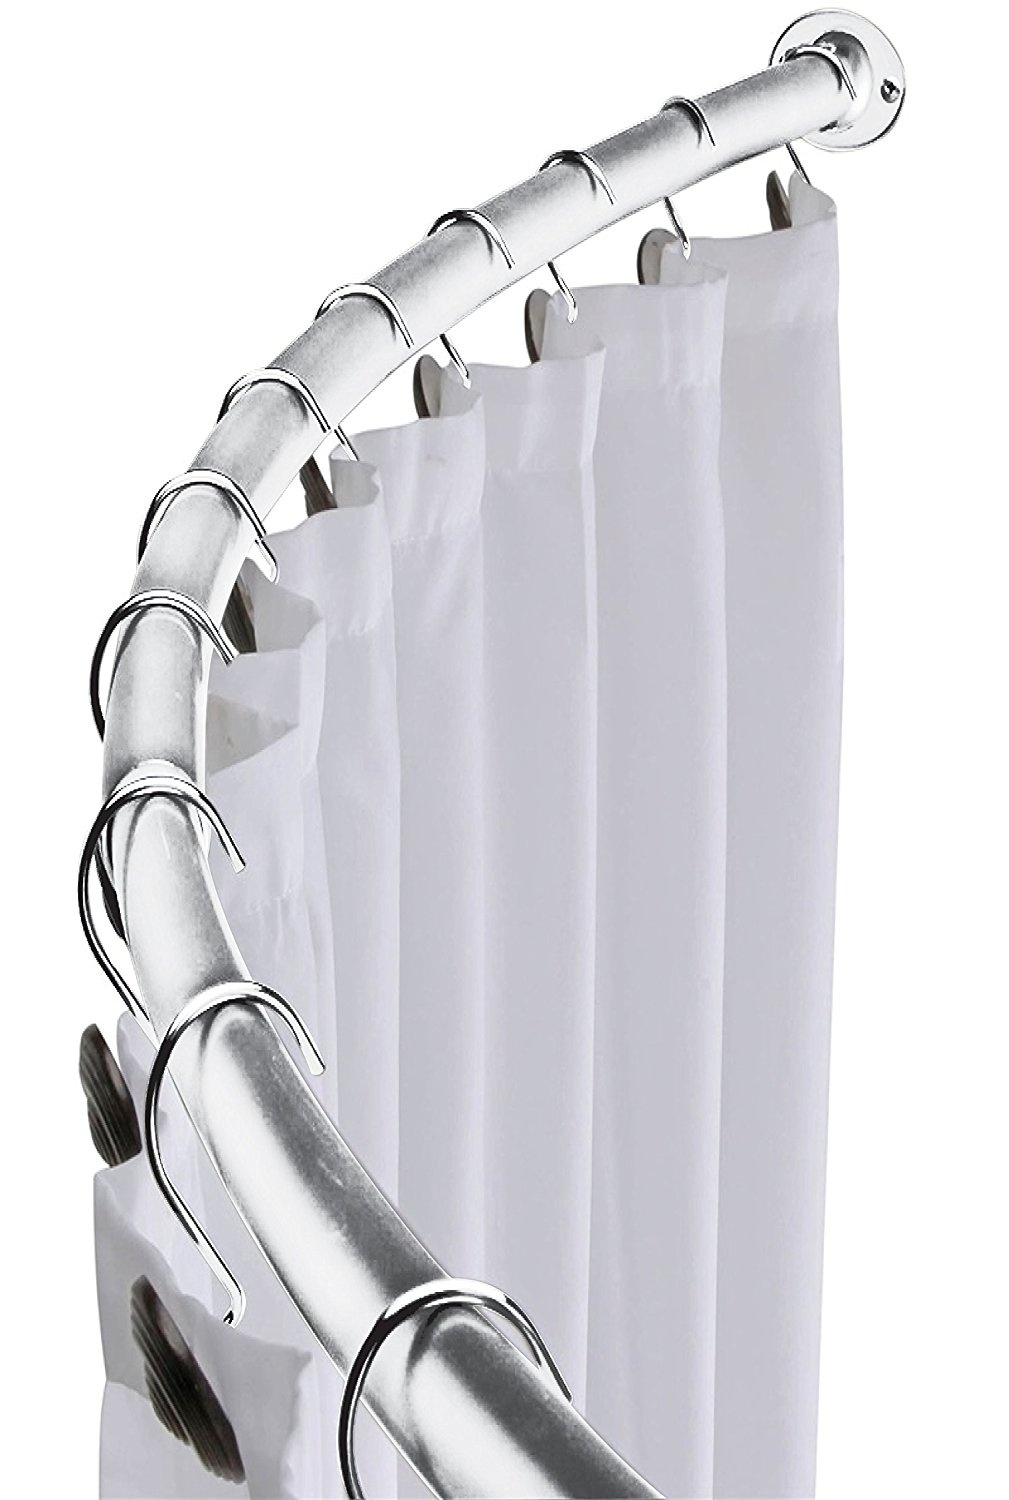 Minel Curved Shower Curtain Rod Expandable From 42 To 72 Added Space Brushed Nickel Finish By Minel Shop Online For Homeware In Australia